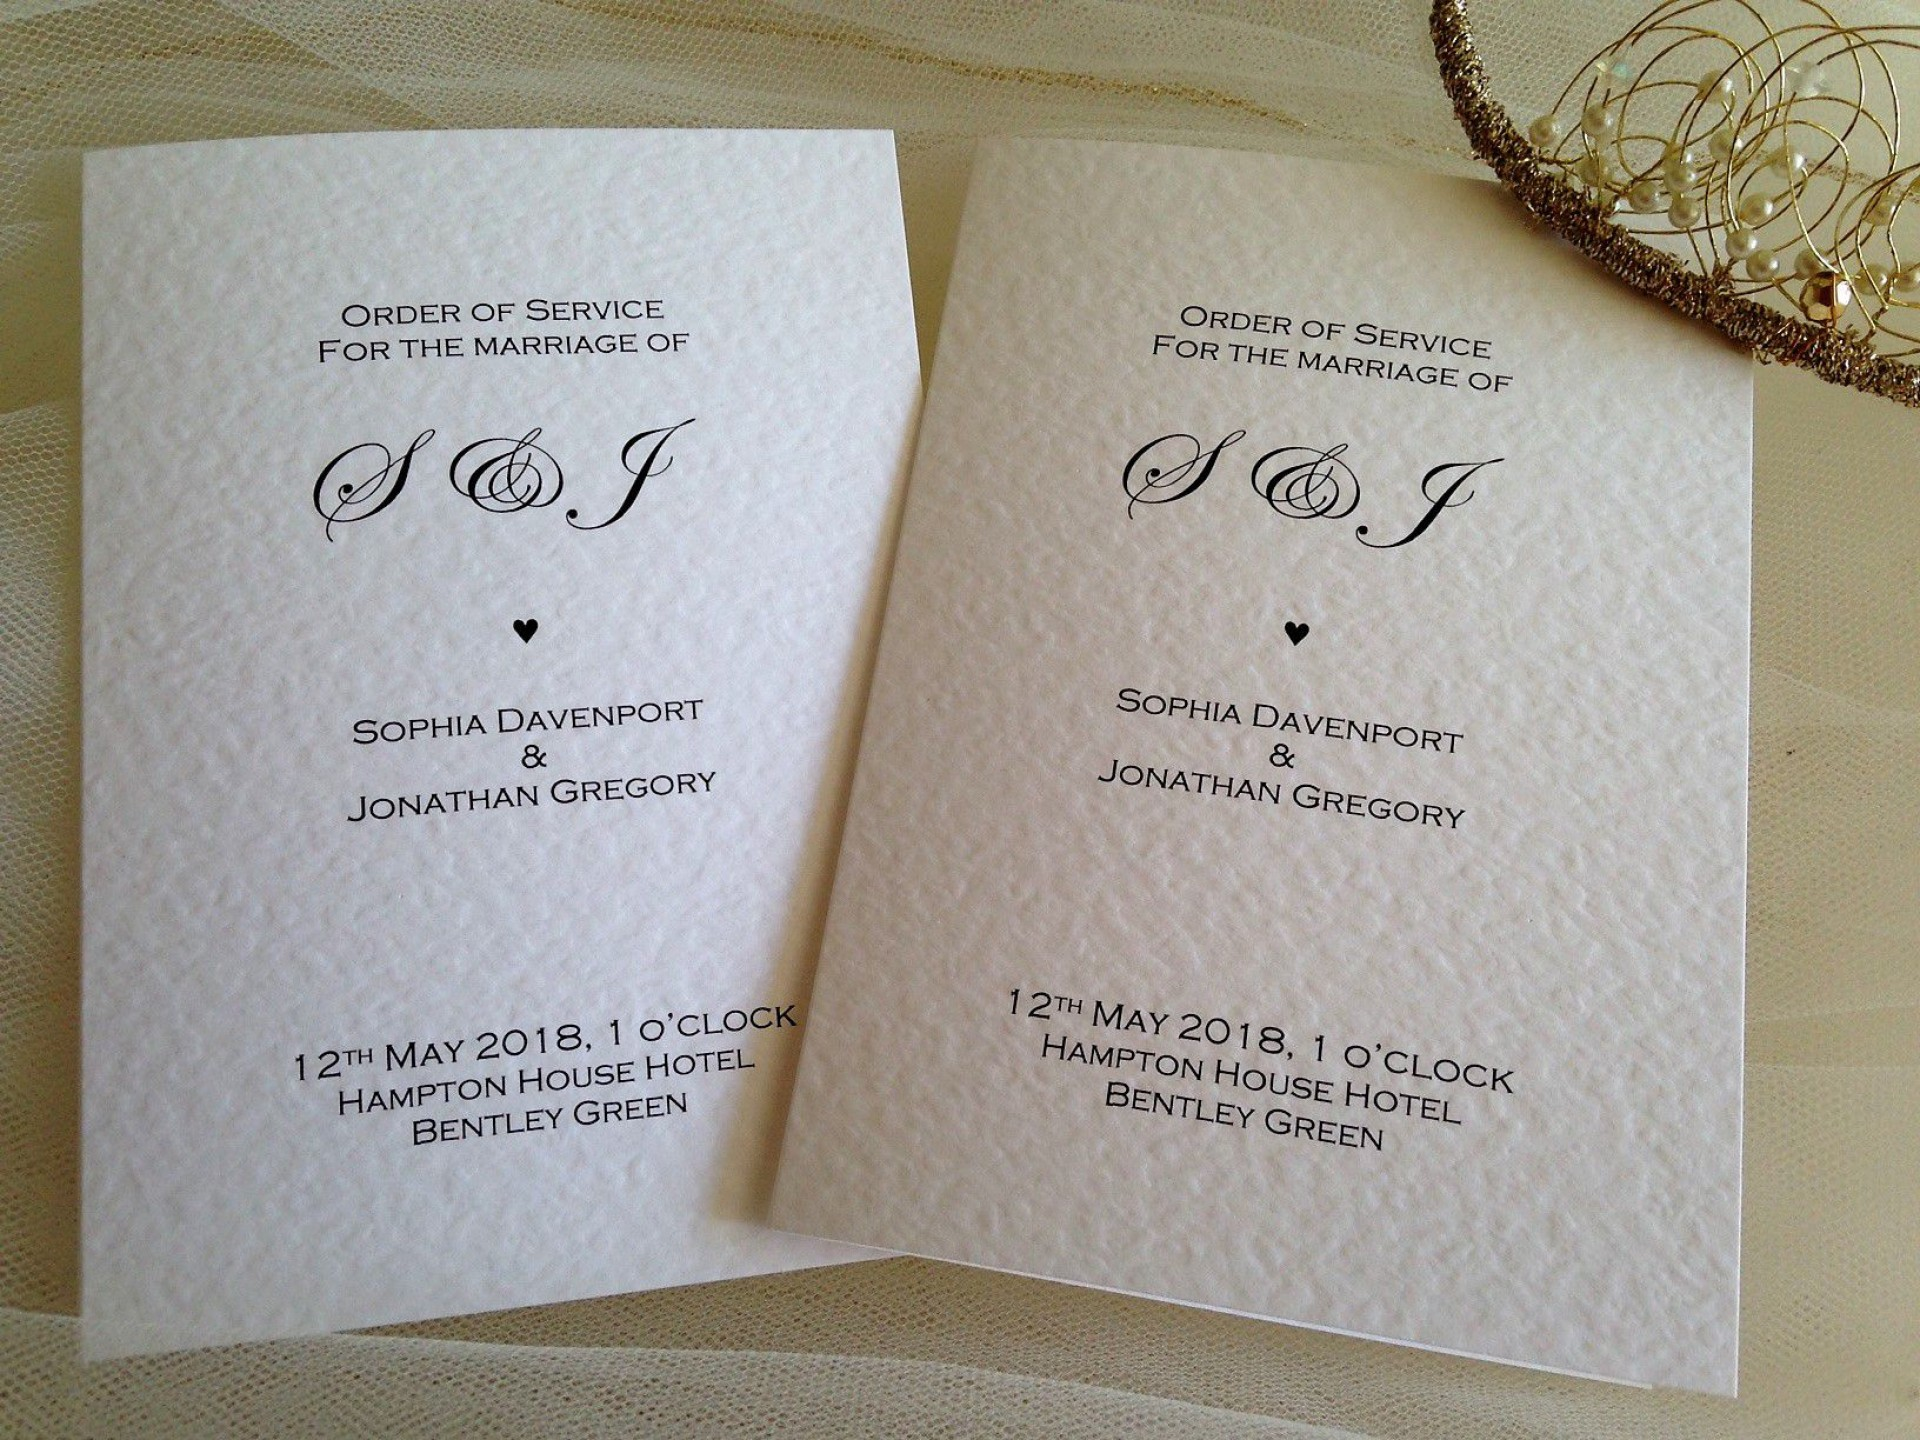 006 Shocking Wedding Order Of Service Template Example  Pdf Publisher Microsoft Word1920